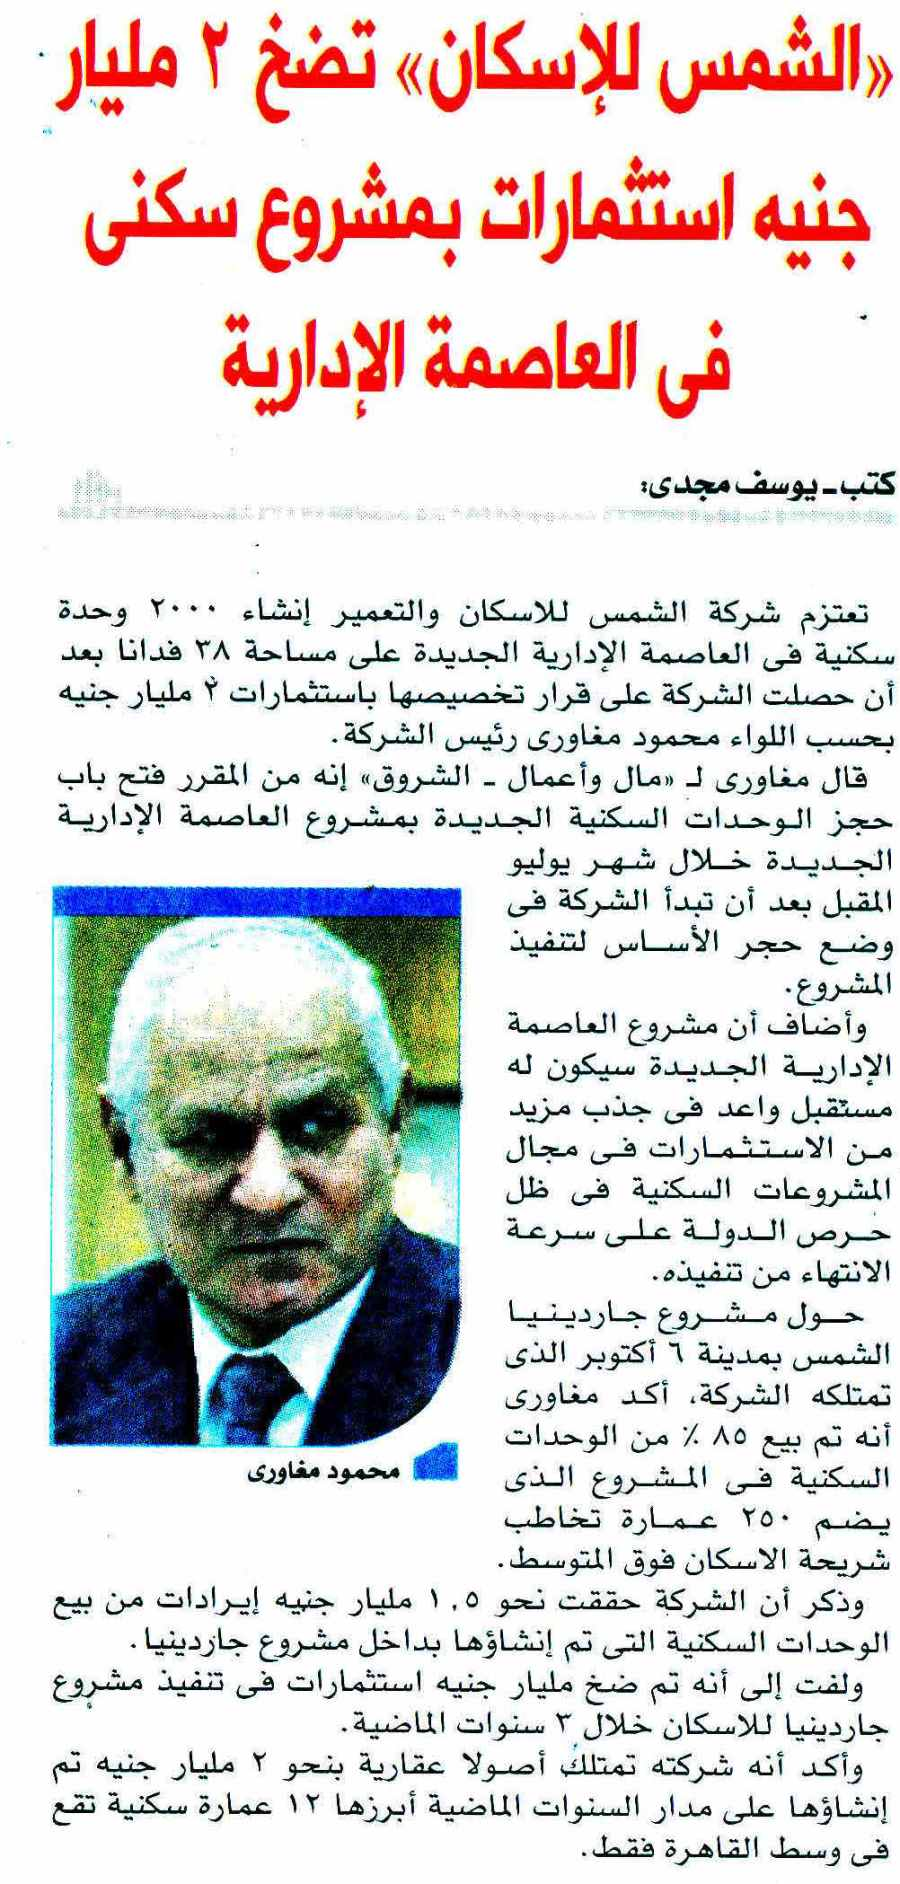 Al Shorouk (Sup) 11 March P.4 C